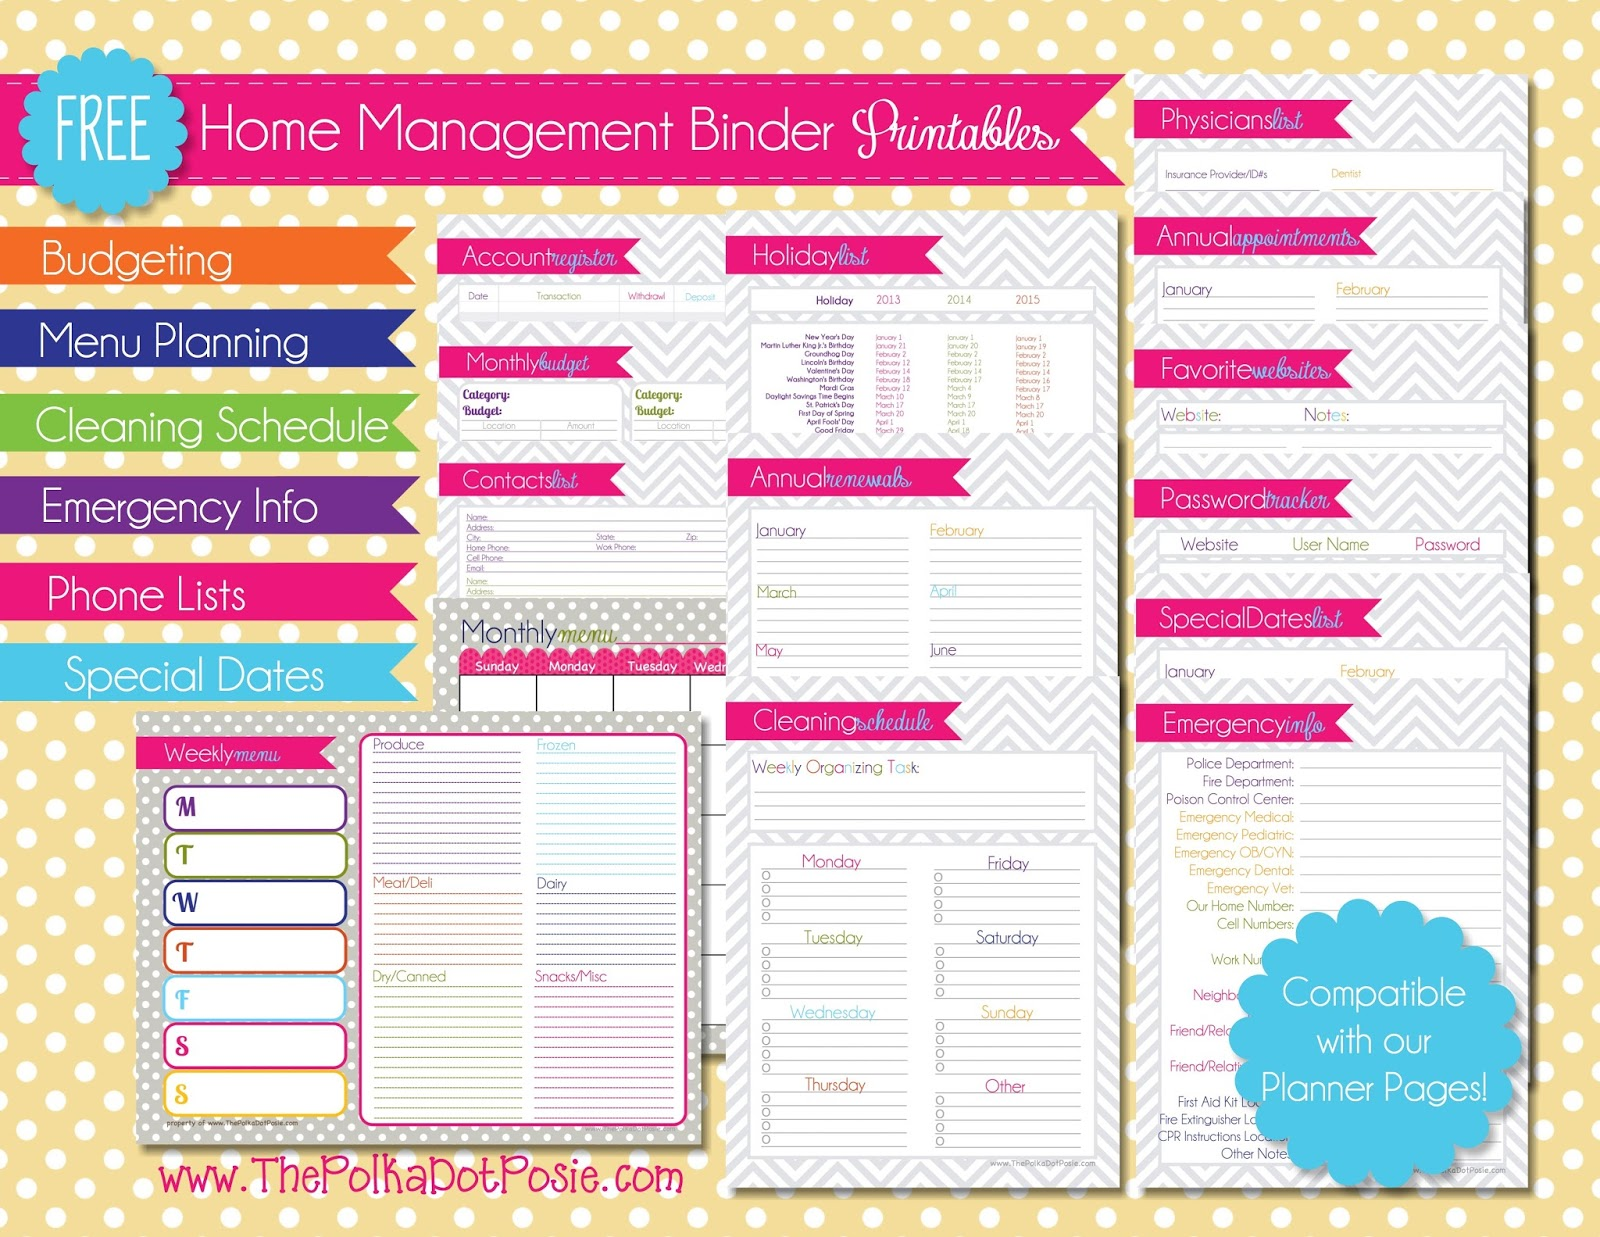 8 Best Images Of Home Management Binder Printables